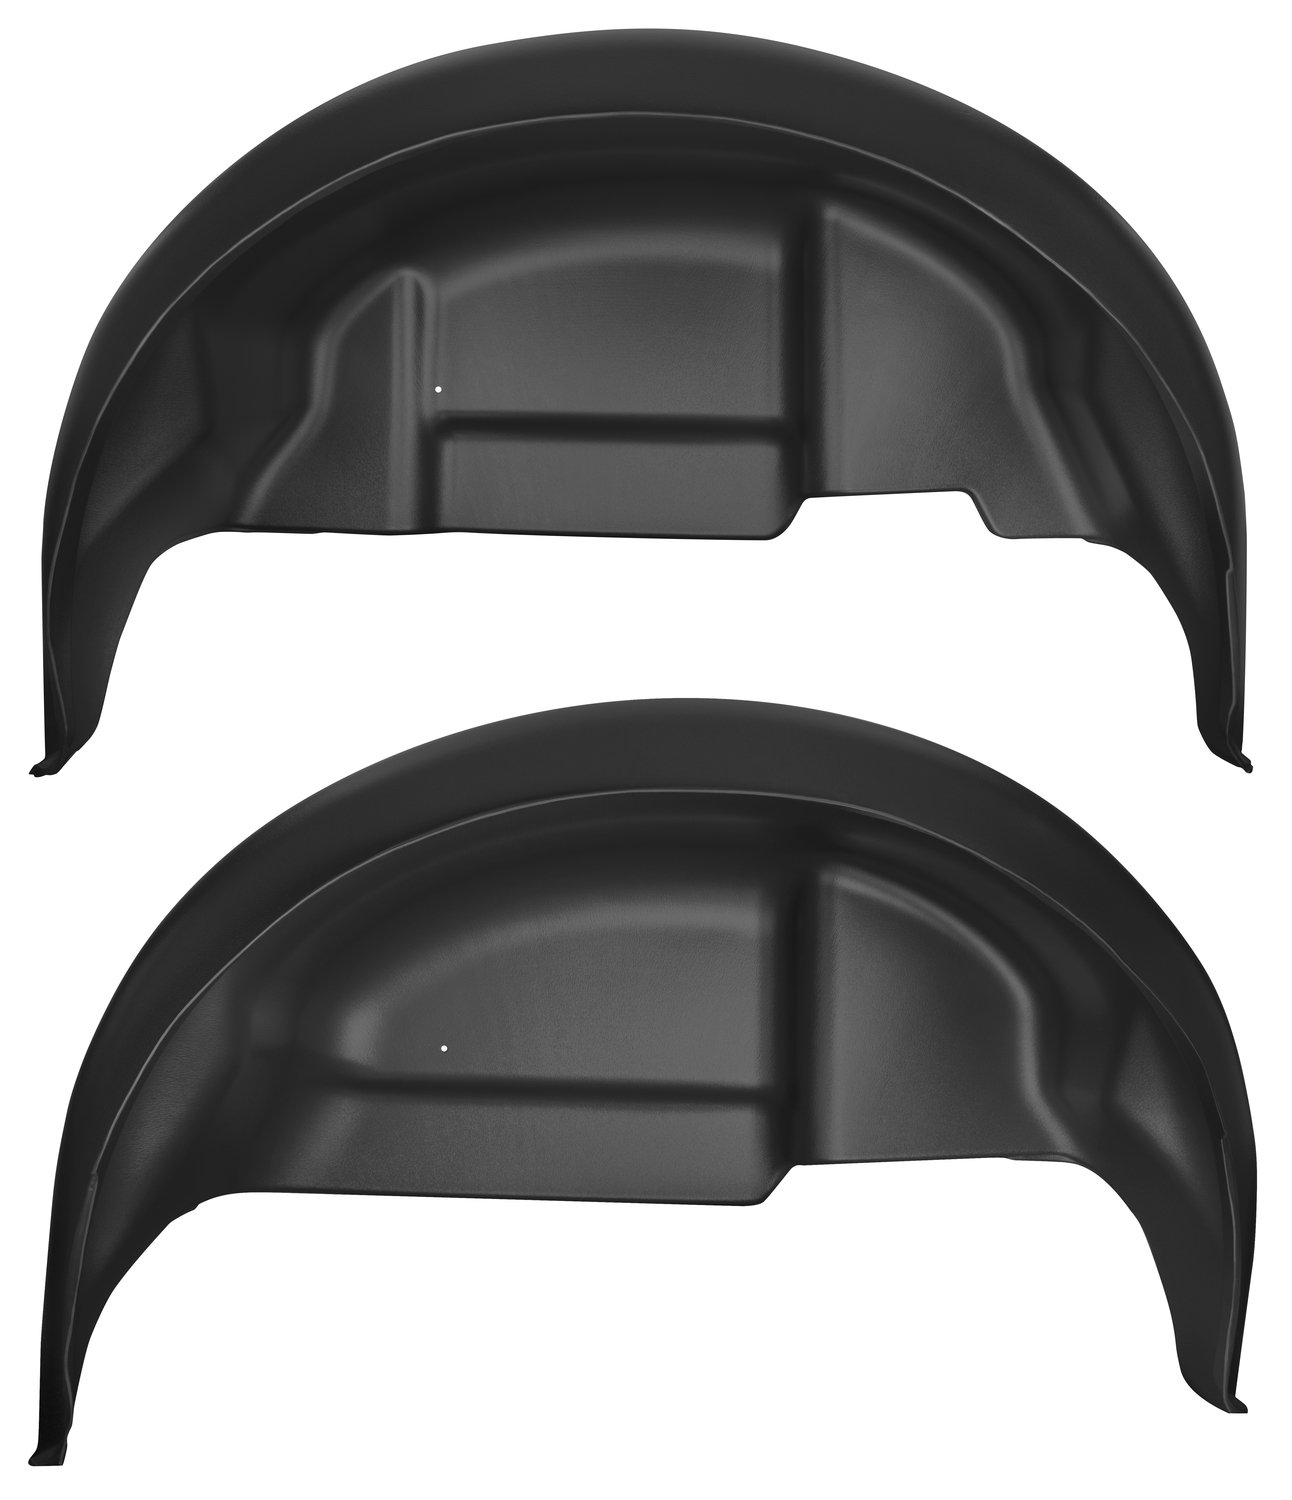 Husky Liners 79141 Black Fits 2017-18 Ford F-150 Raptor Rear Wheel Well Guards by Husky Liners